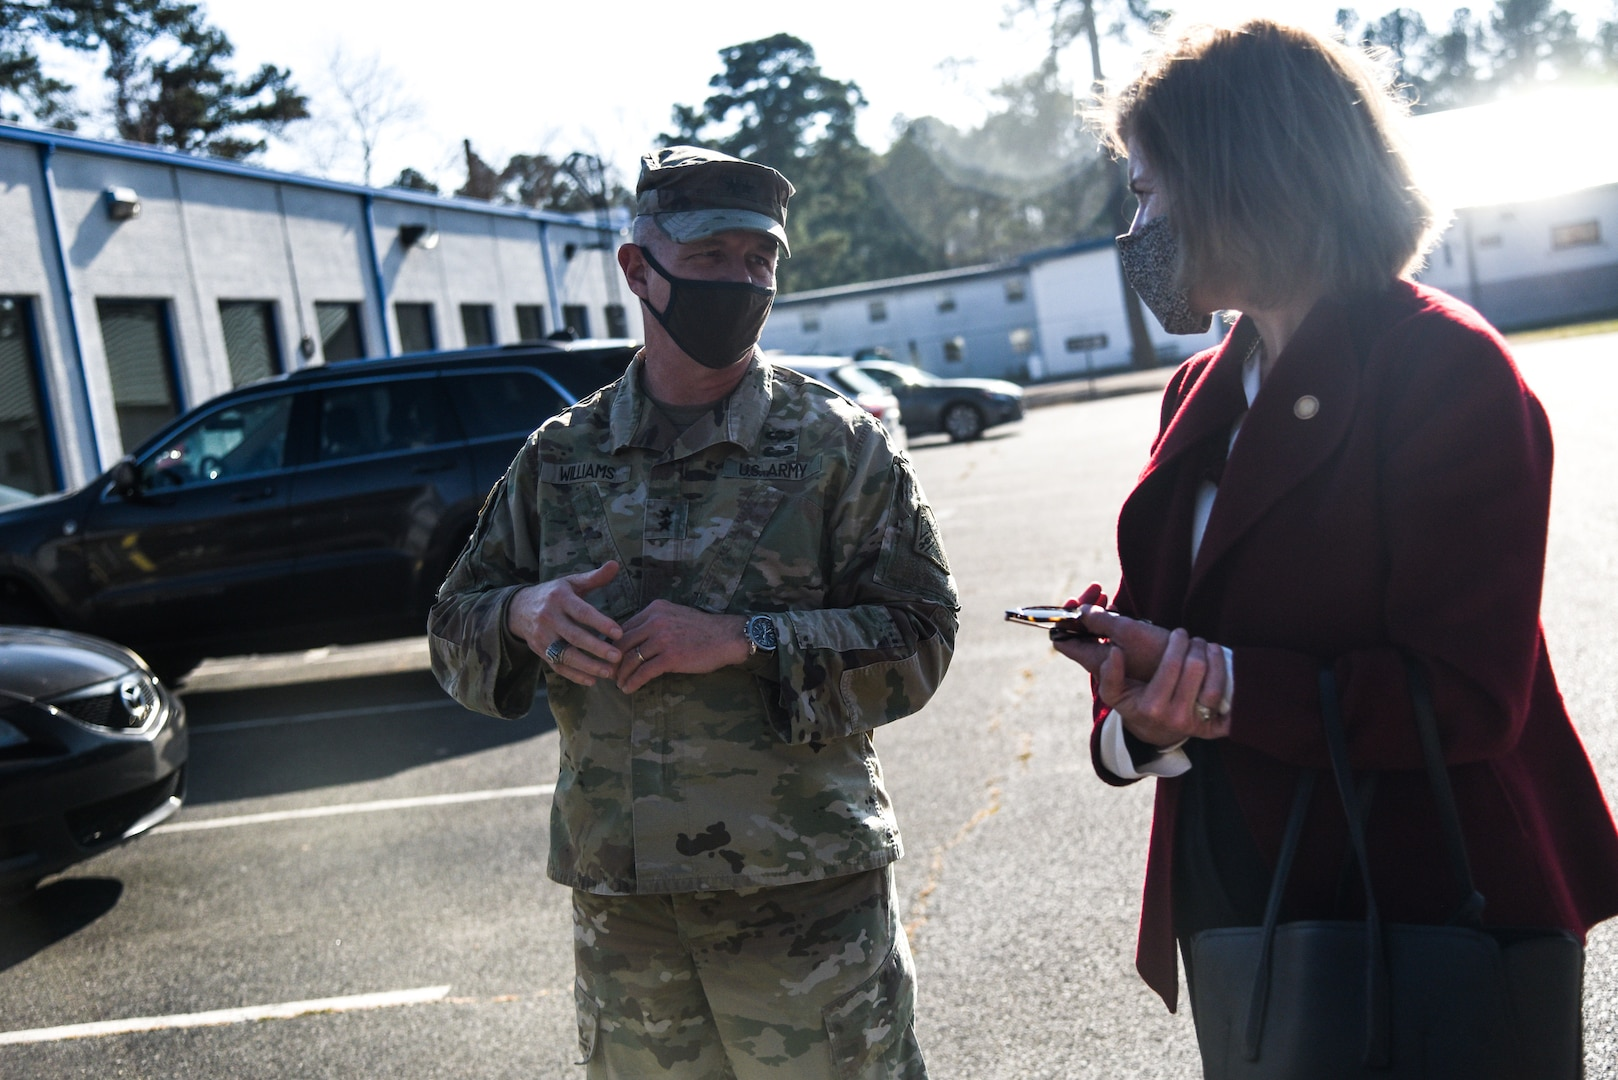 Virginia Deputy Secretary of Veterans and Defense Affairs Kathleen Jabs tours the Virginia National Guard's Army Aviation Support Facility alongside Maj. Gen. Timothy P. Williams, the Adjutant General of Virginia, Dec. 11, 2020, near the Richmond International Airport. The tour served to better familiarize the deputy secretary with the capabilities of the VNG's aviation assets, the support capabilities of the AASF, and the initiative to build a new facility.